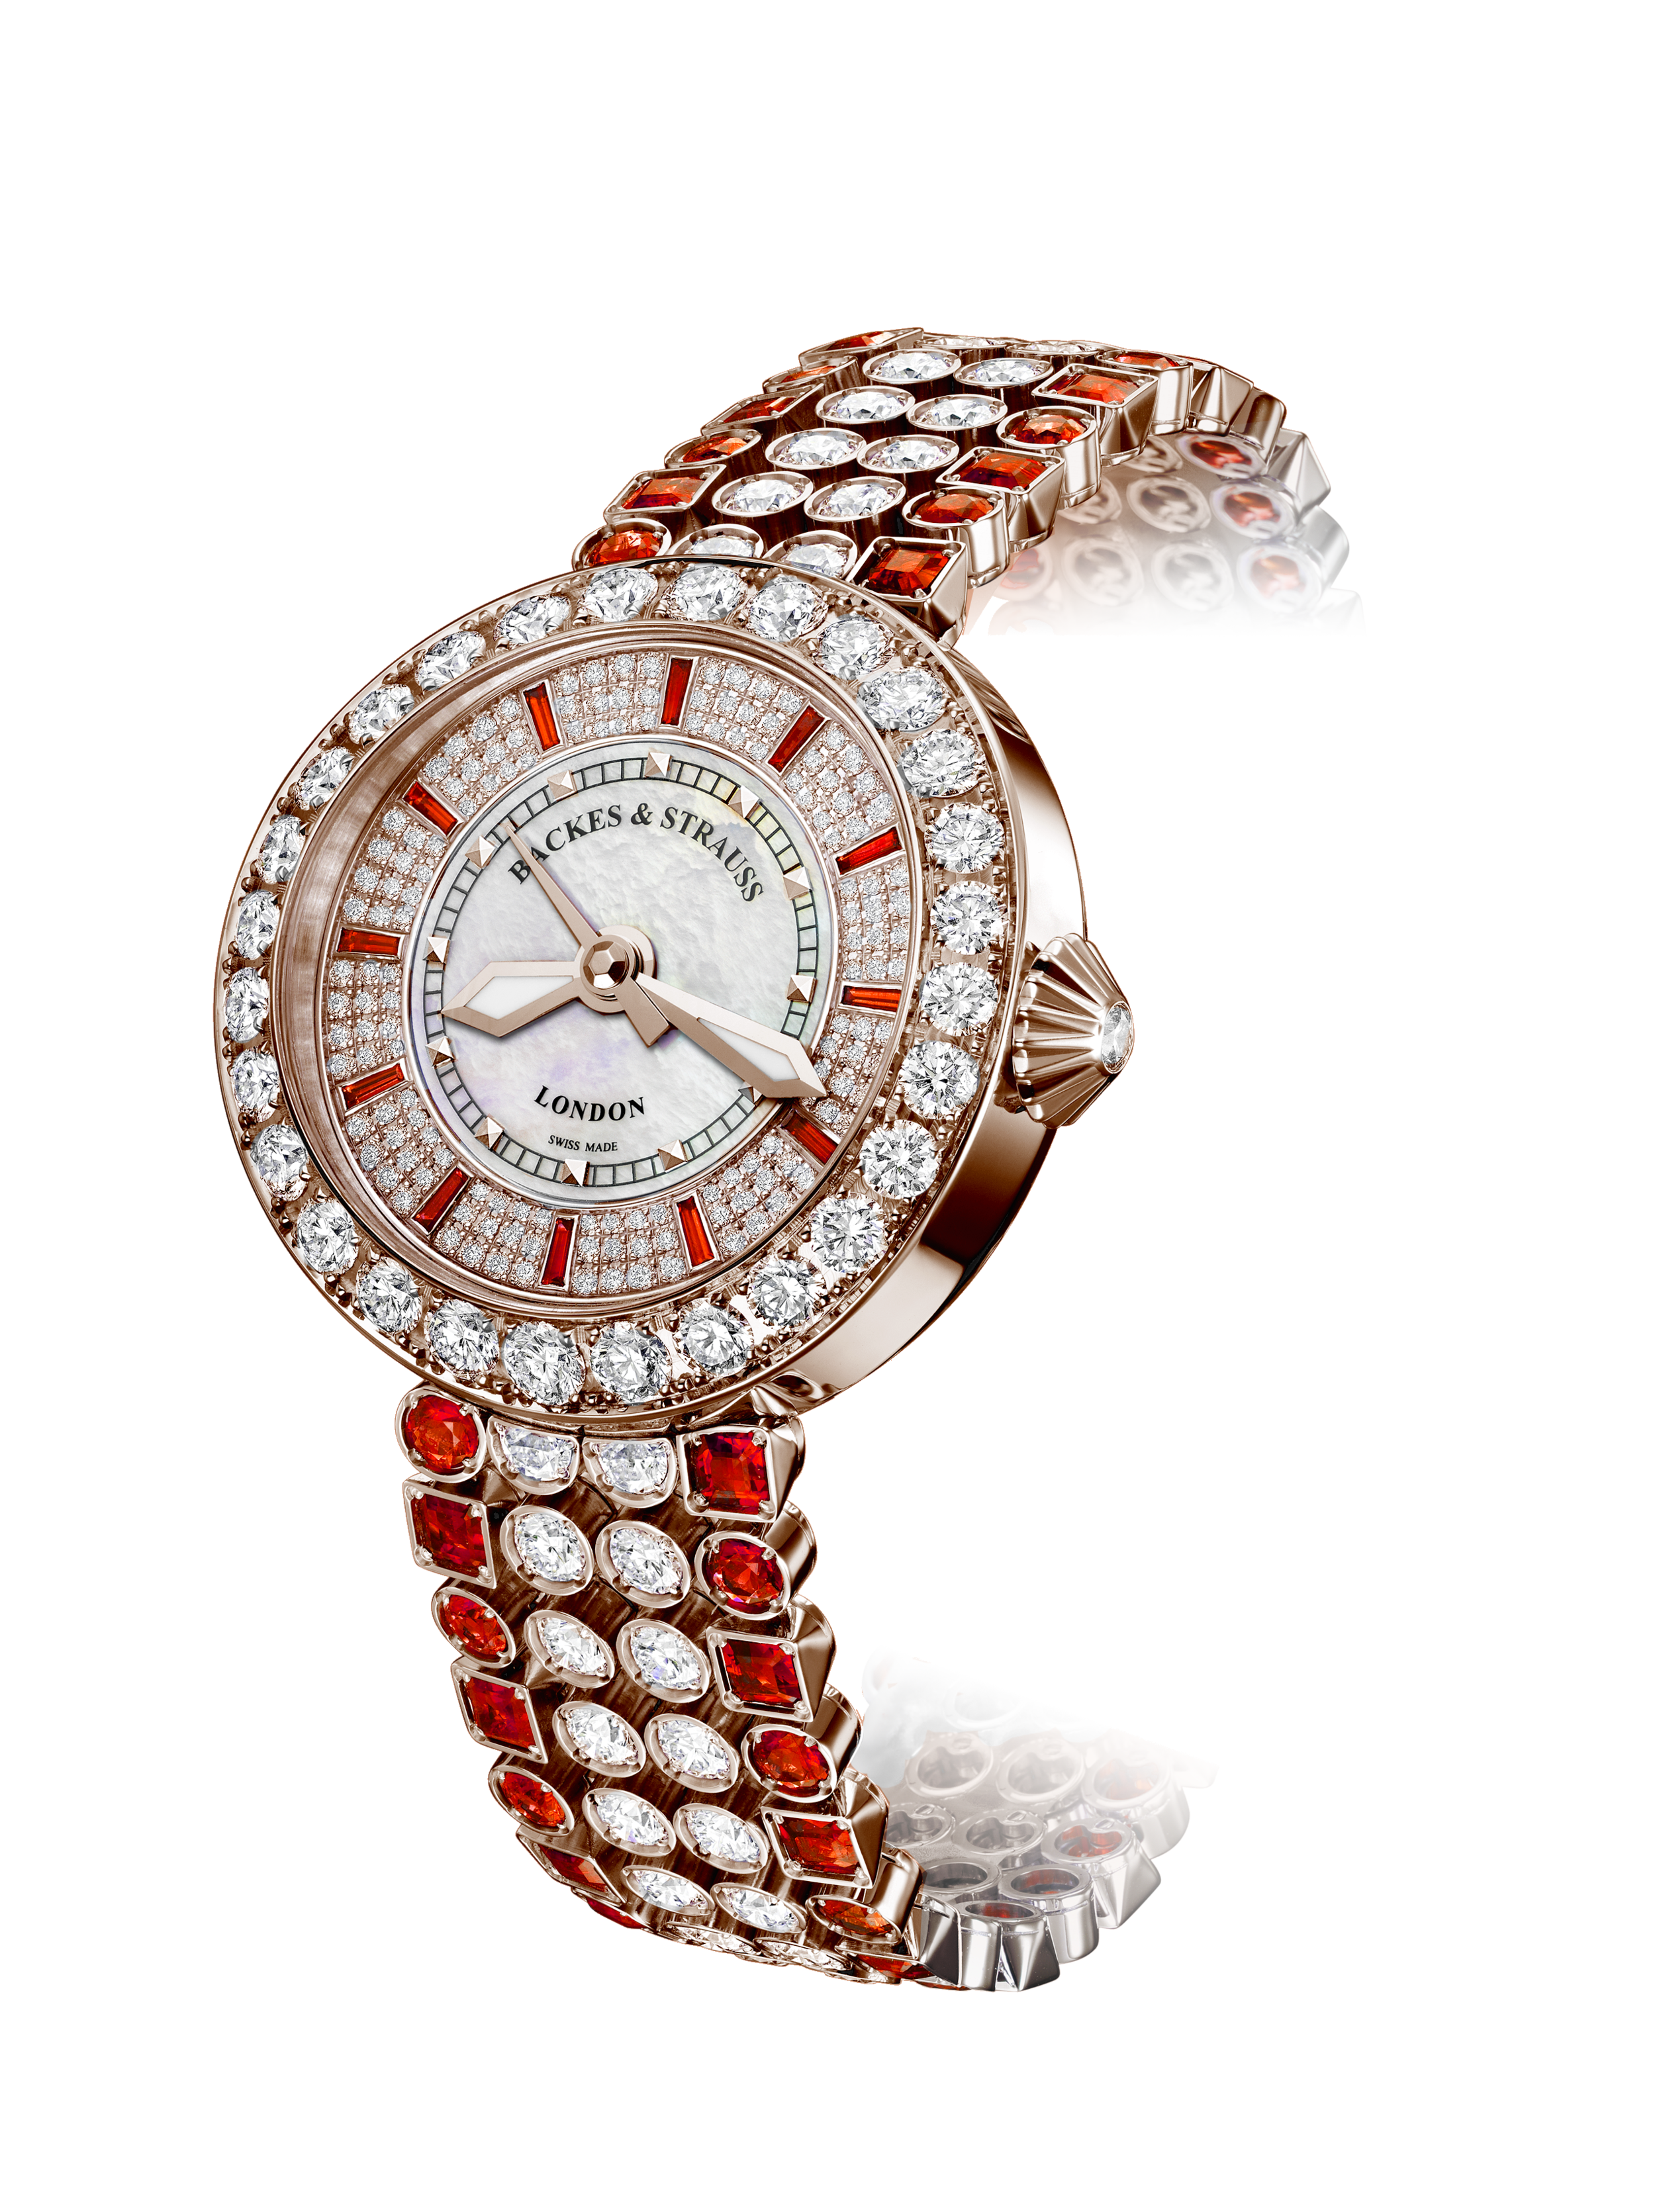 Piccadilly Princess 37 red rose diamond watch